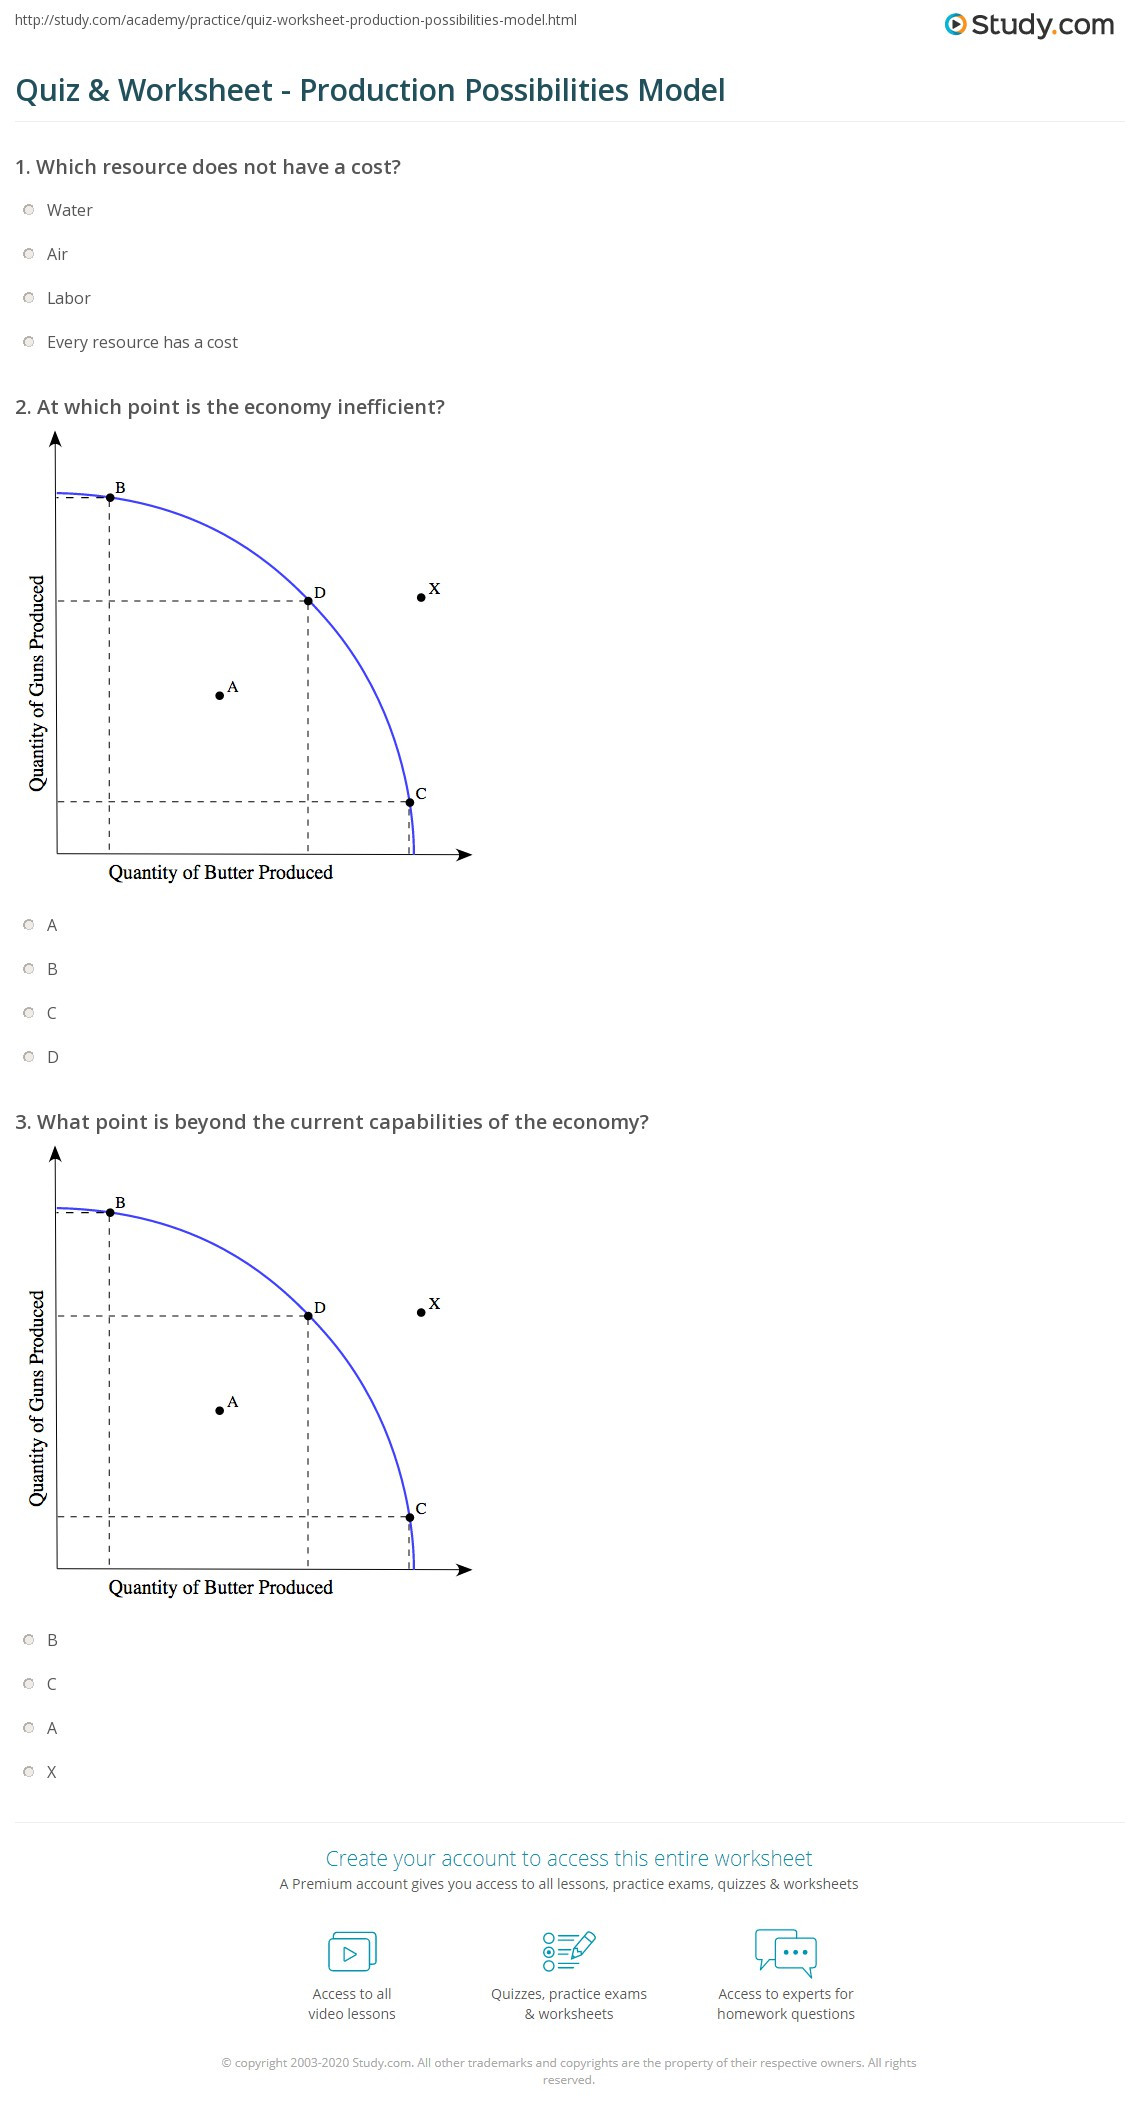 Production Possibilities Curve Worksheet Answers